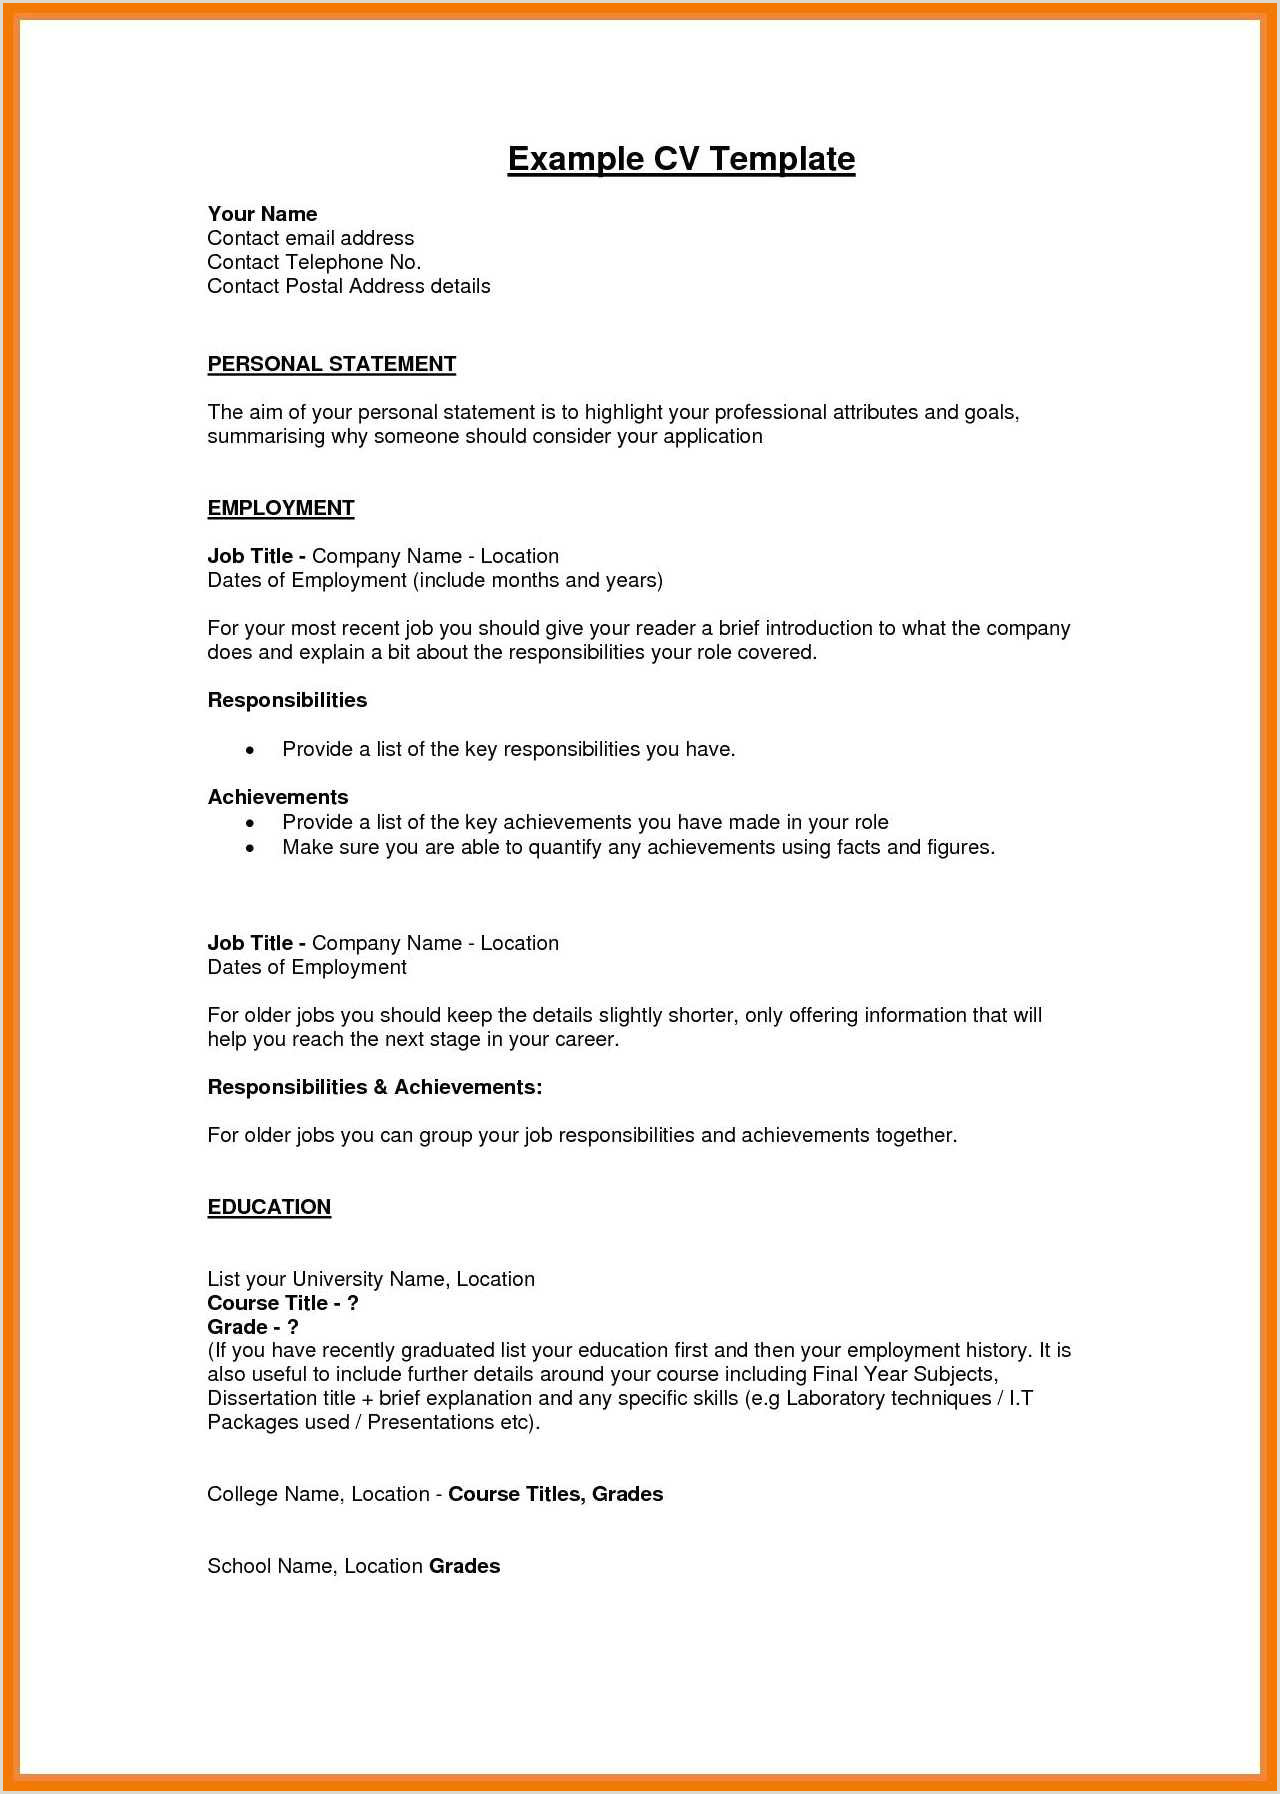 Standard Cv format In Pdf 12 13 Personal Profiles On Resumes